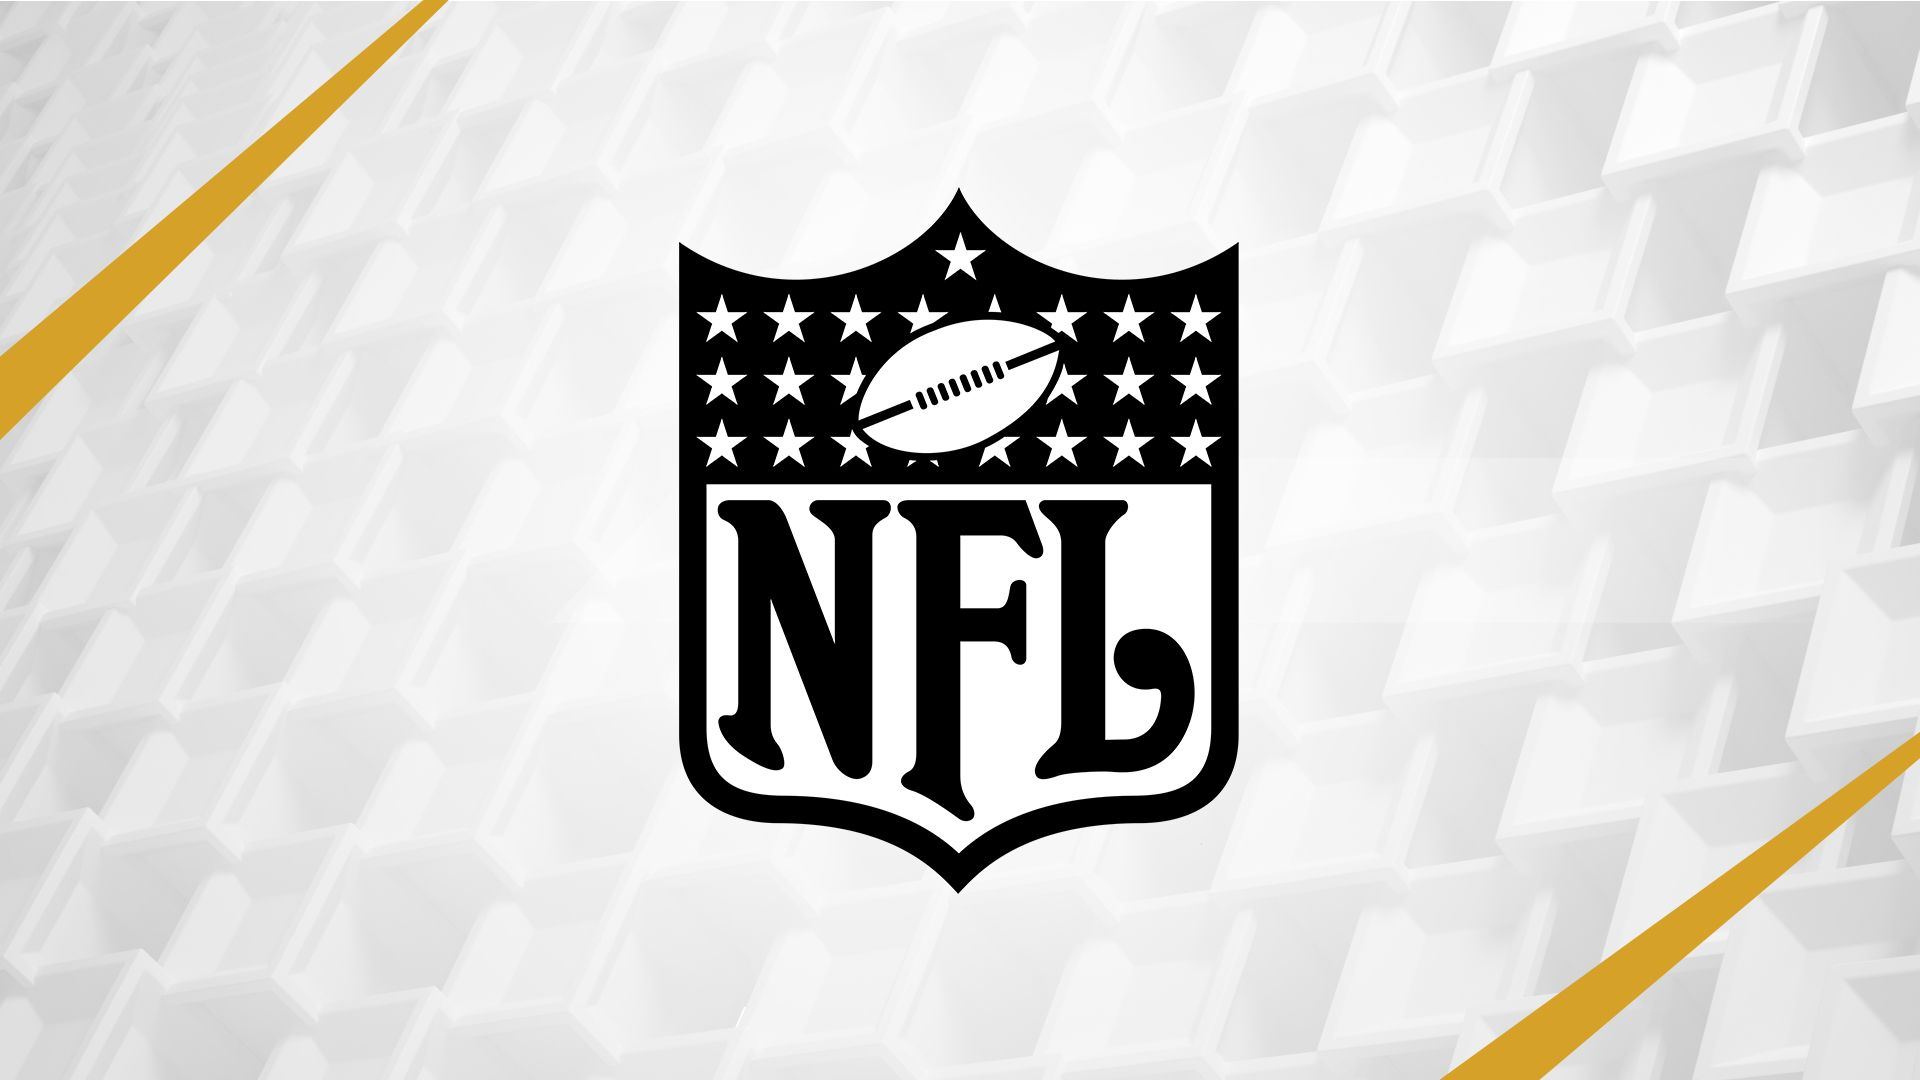 NFL Educational Resources